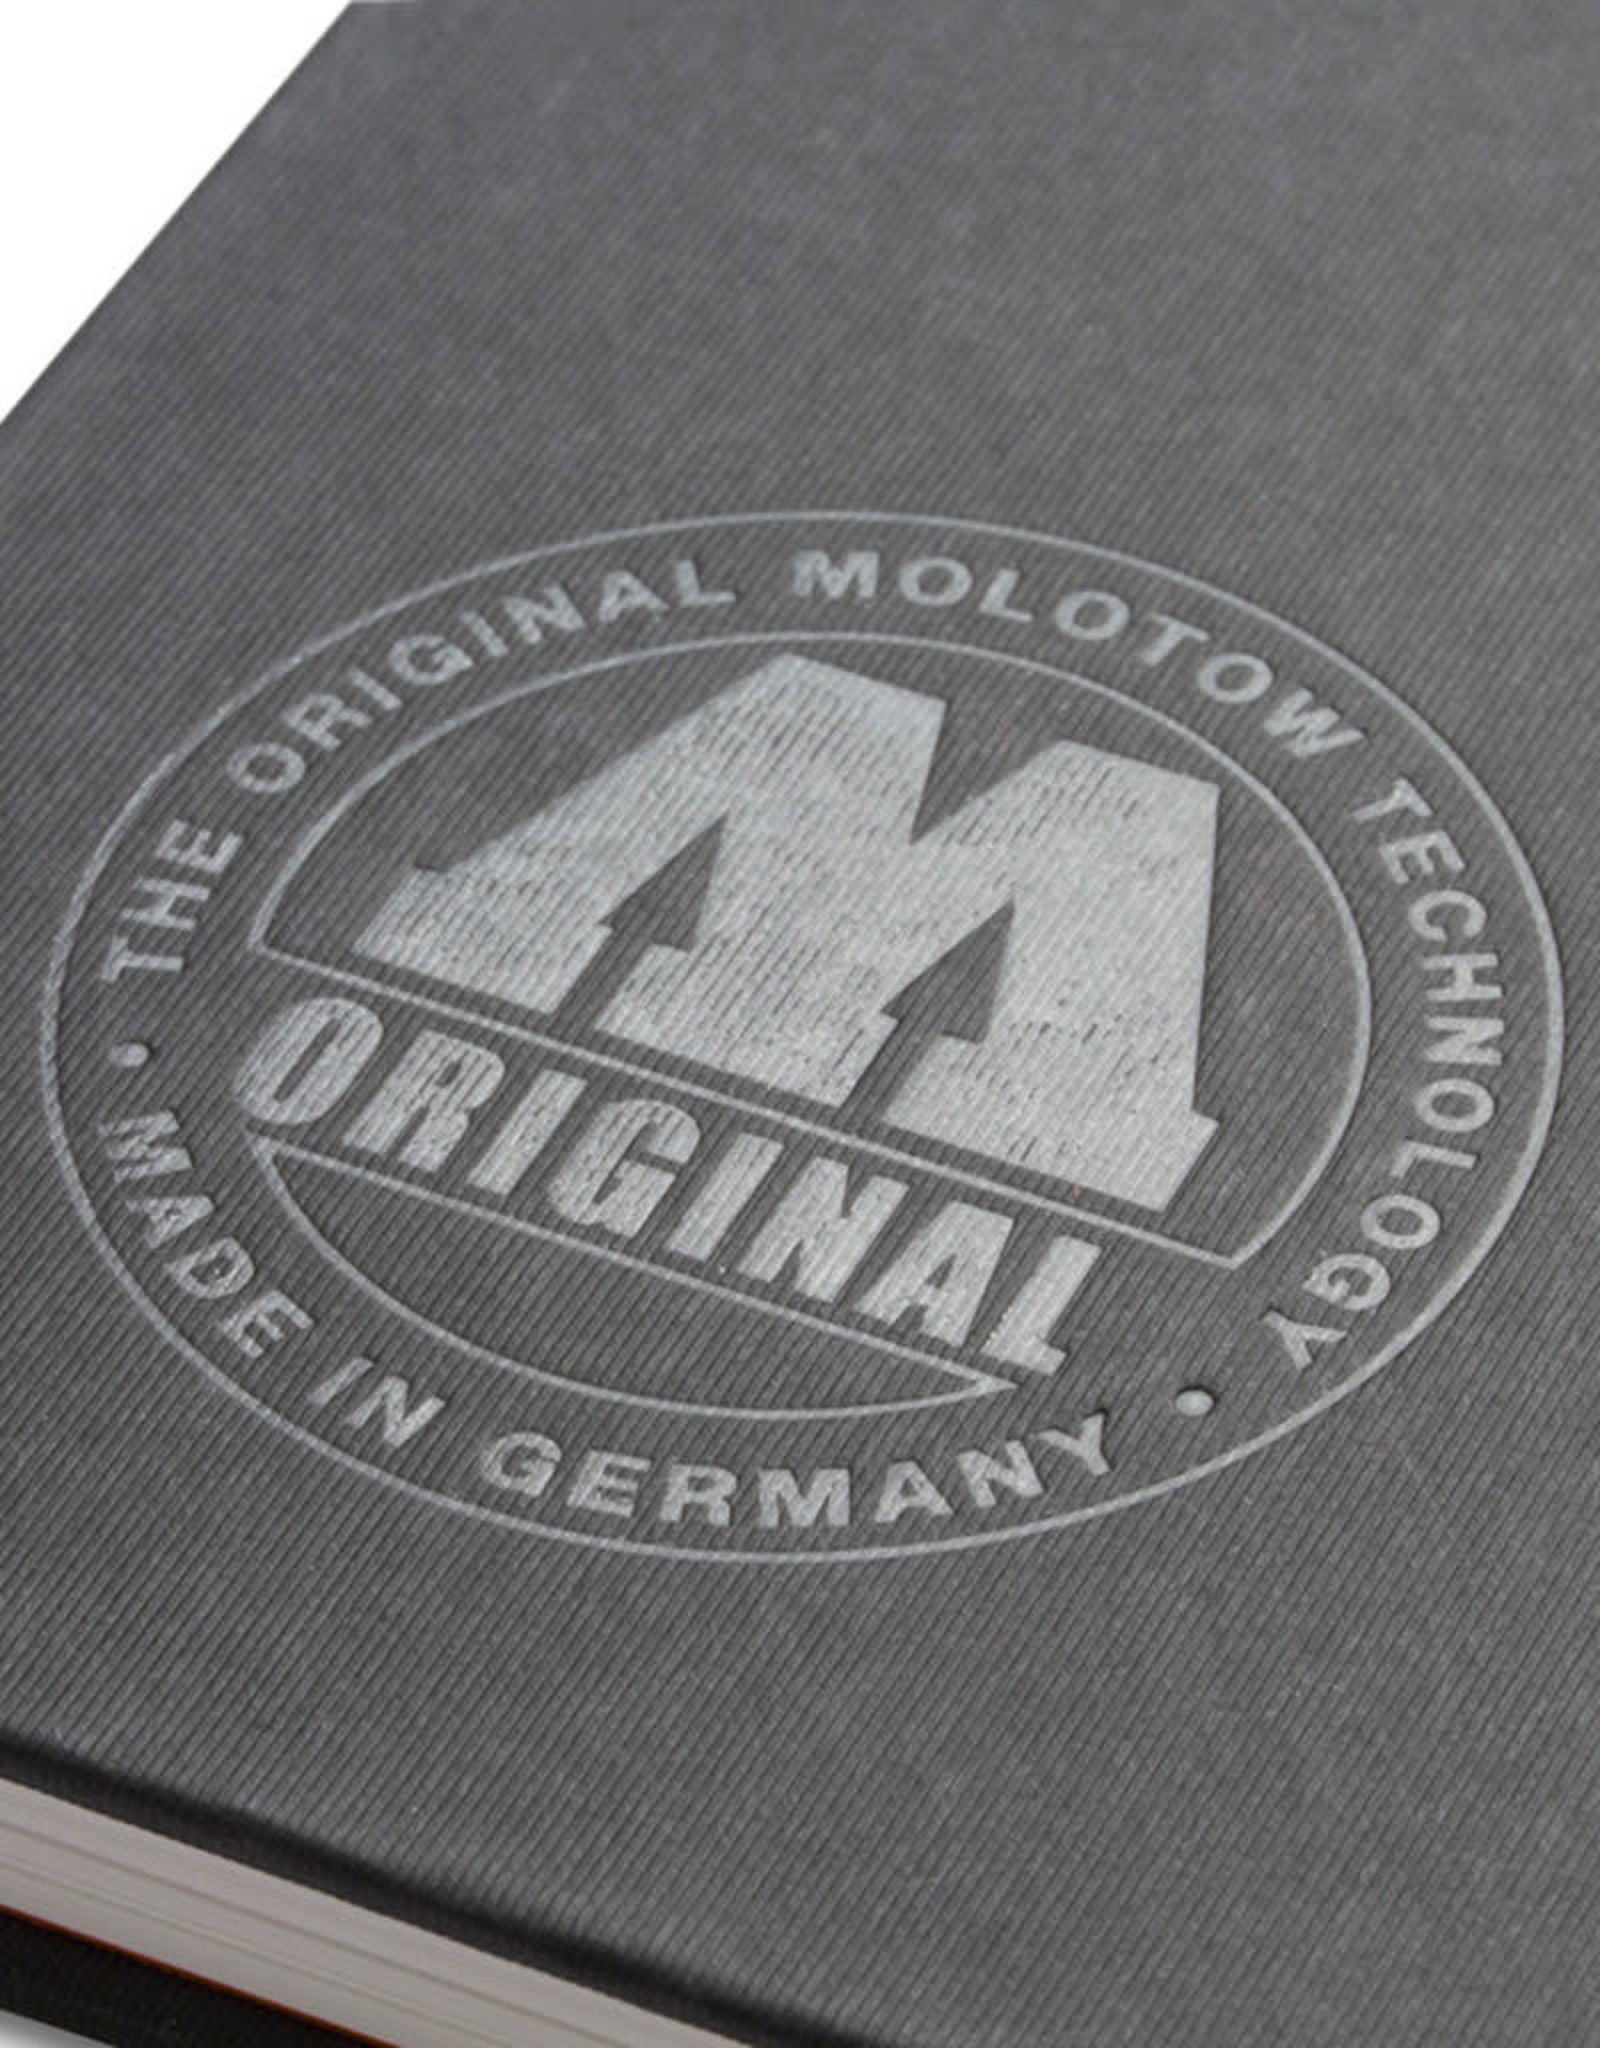 MOLOTOW MOLOTOW ONE4ALL Professional Sketchbook DIN A5